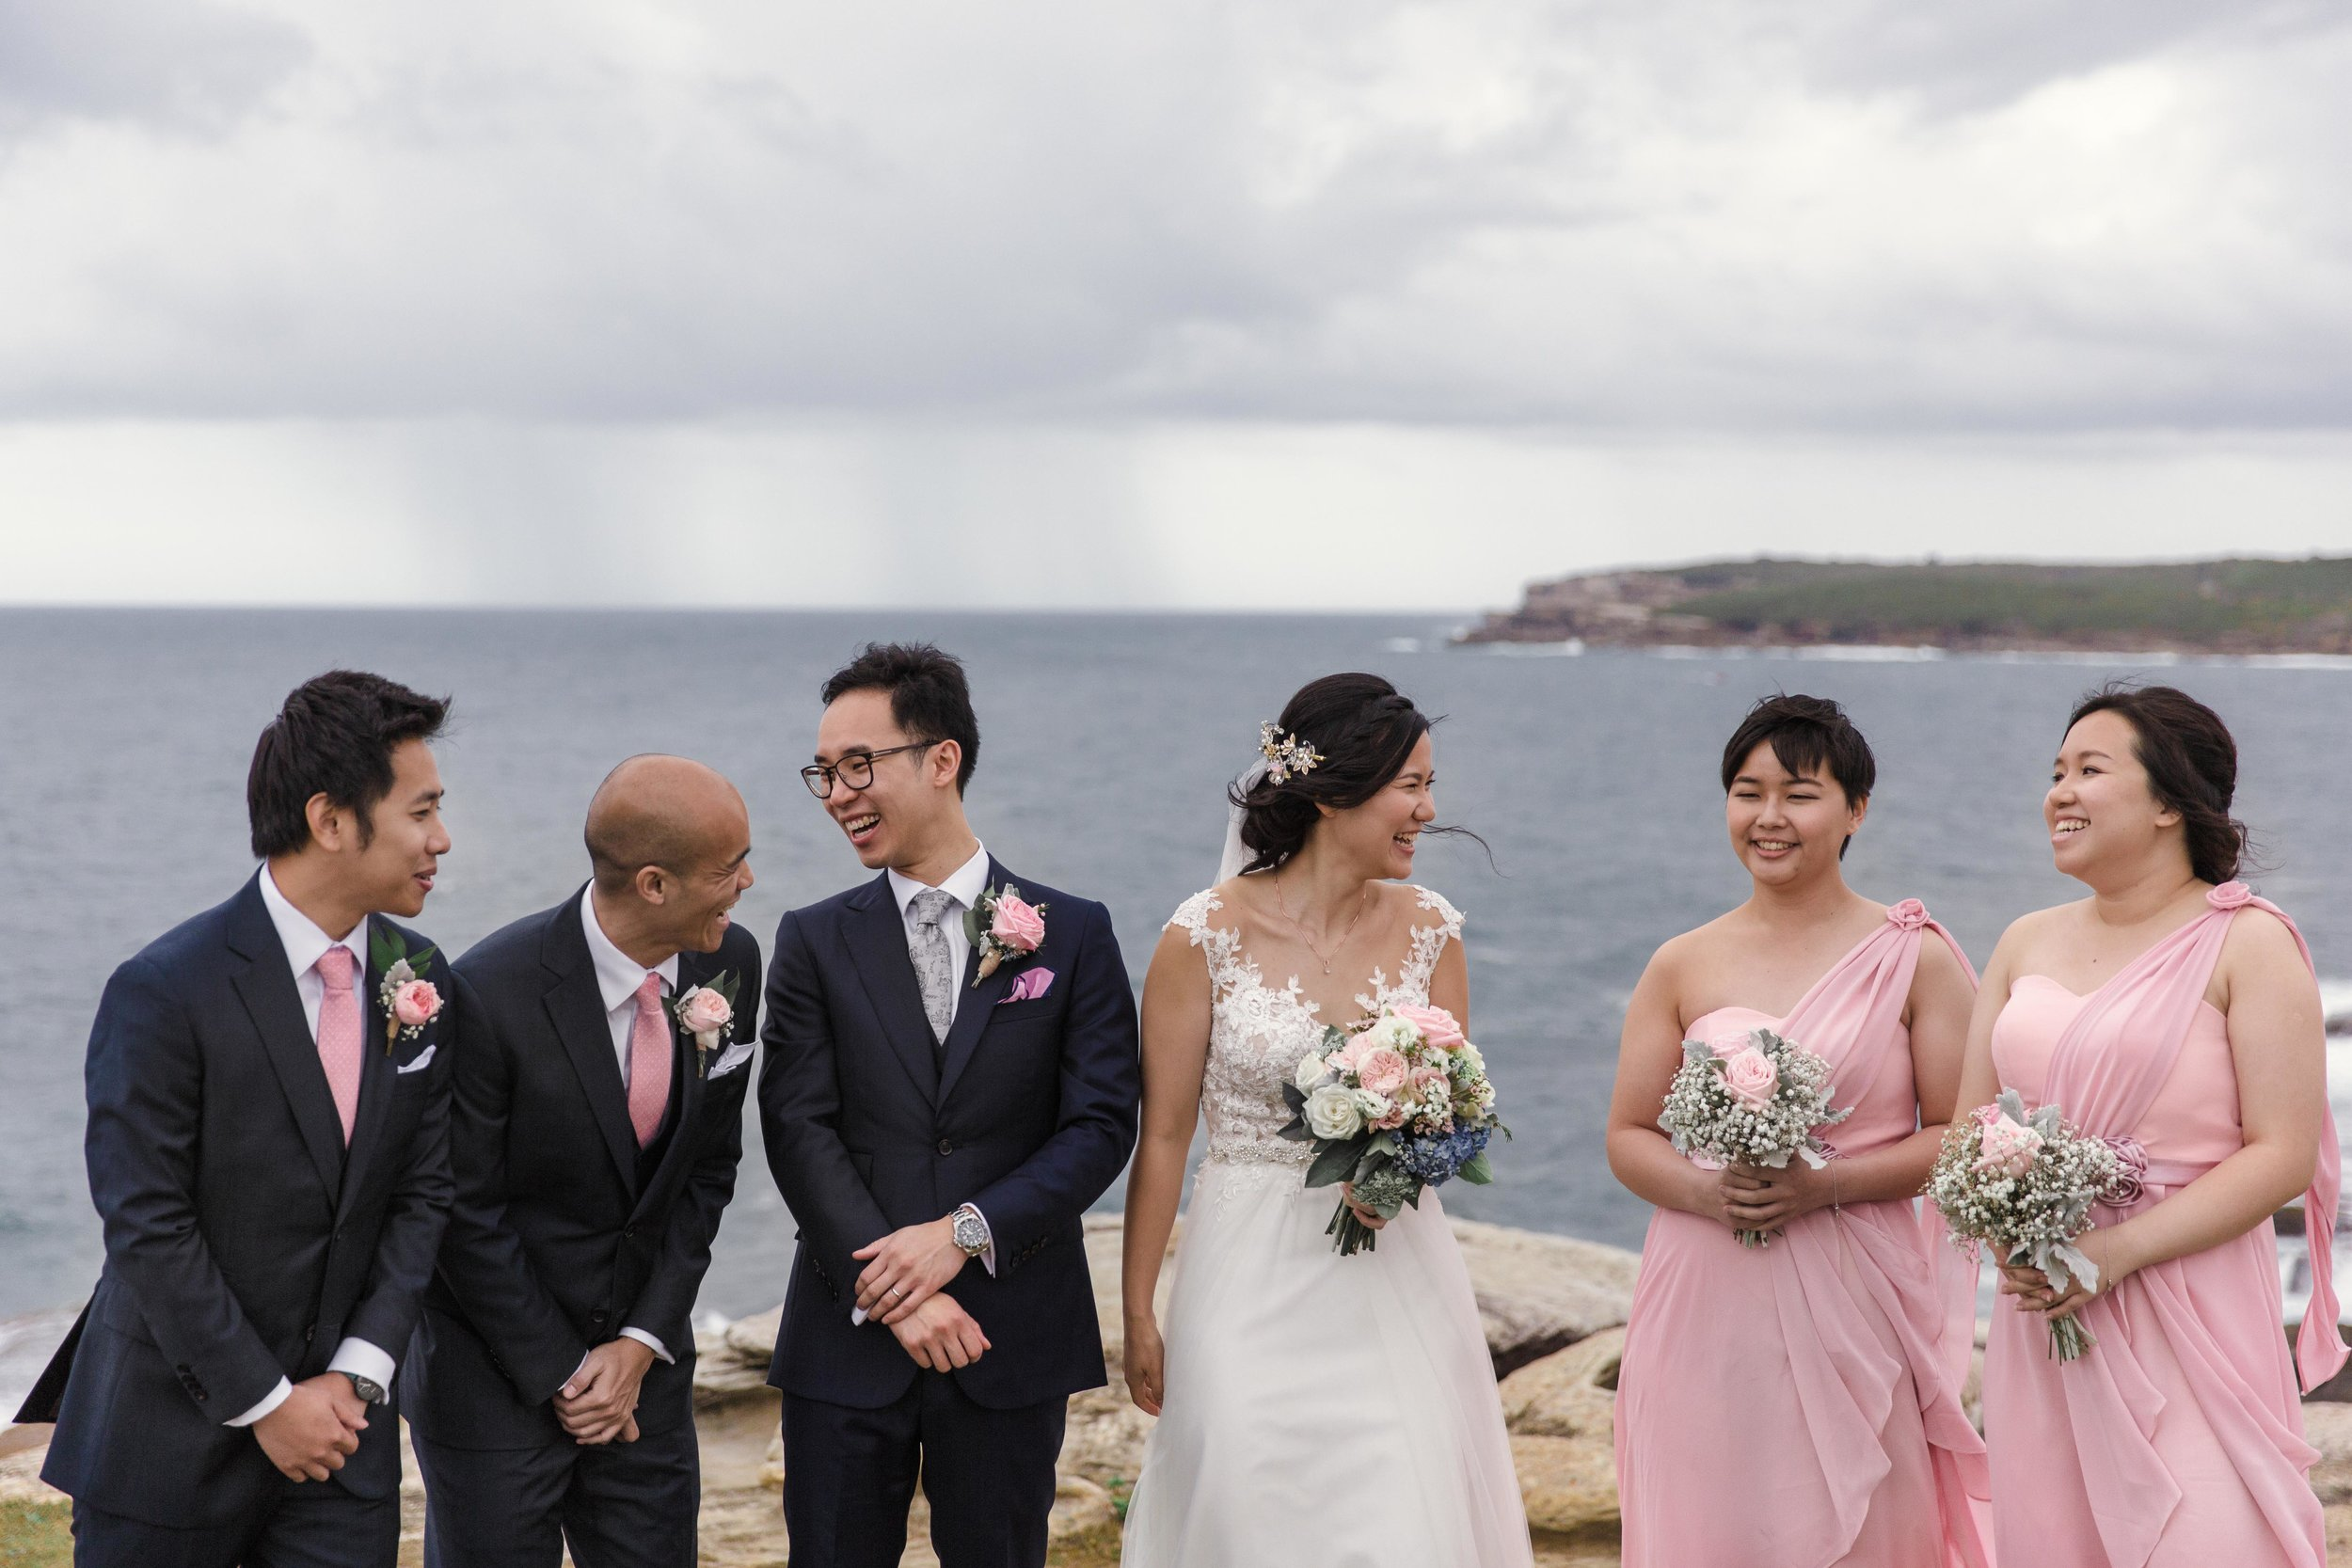 Photographed With Love Sydney Wedding Photography Maroubraa